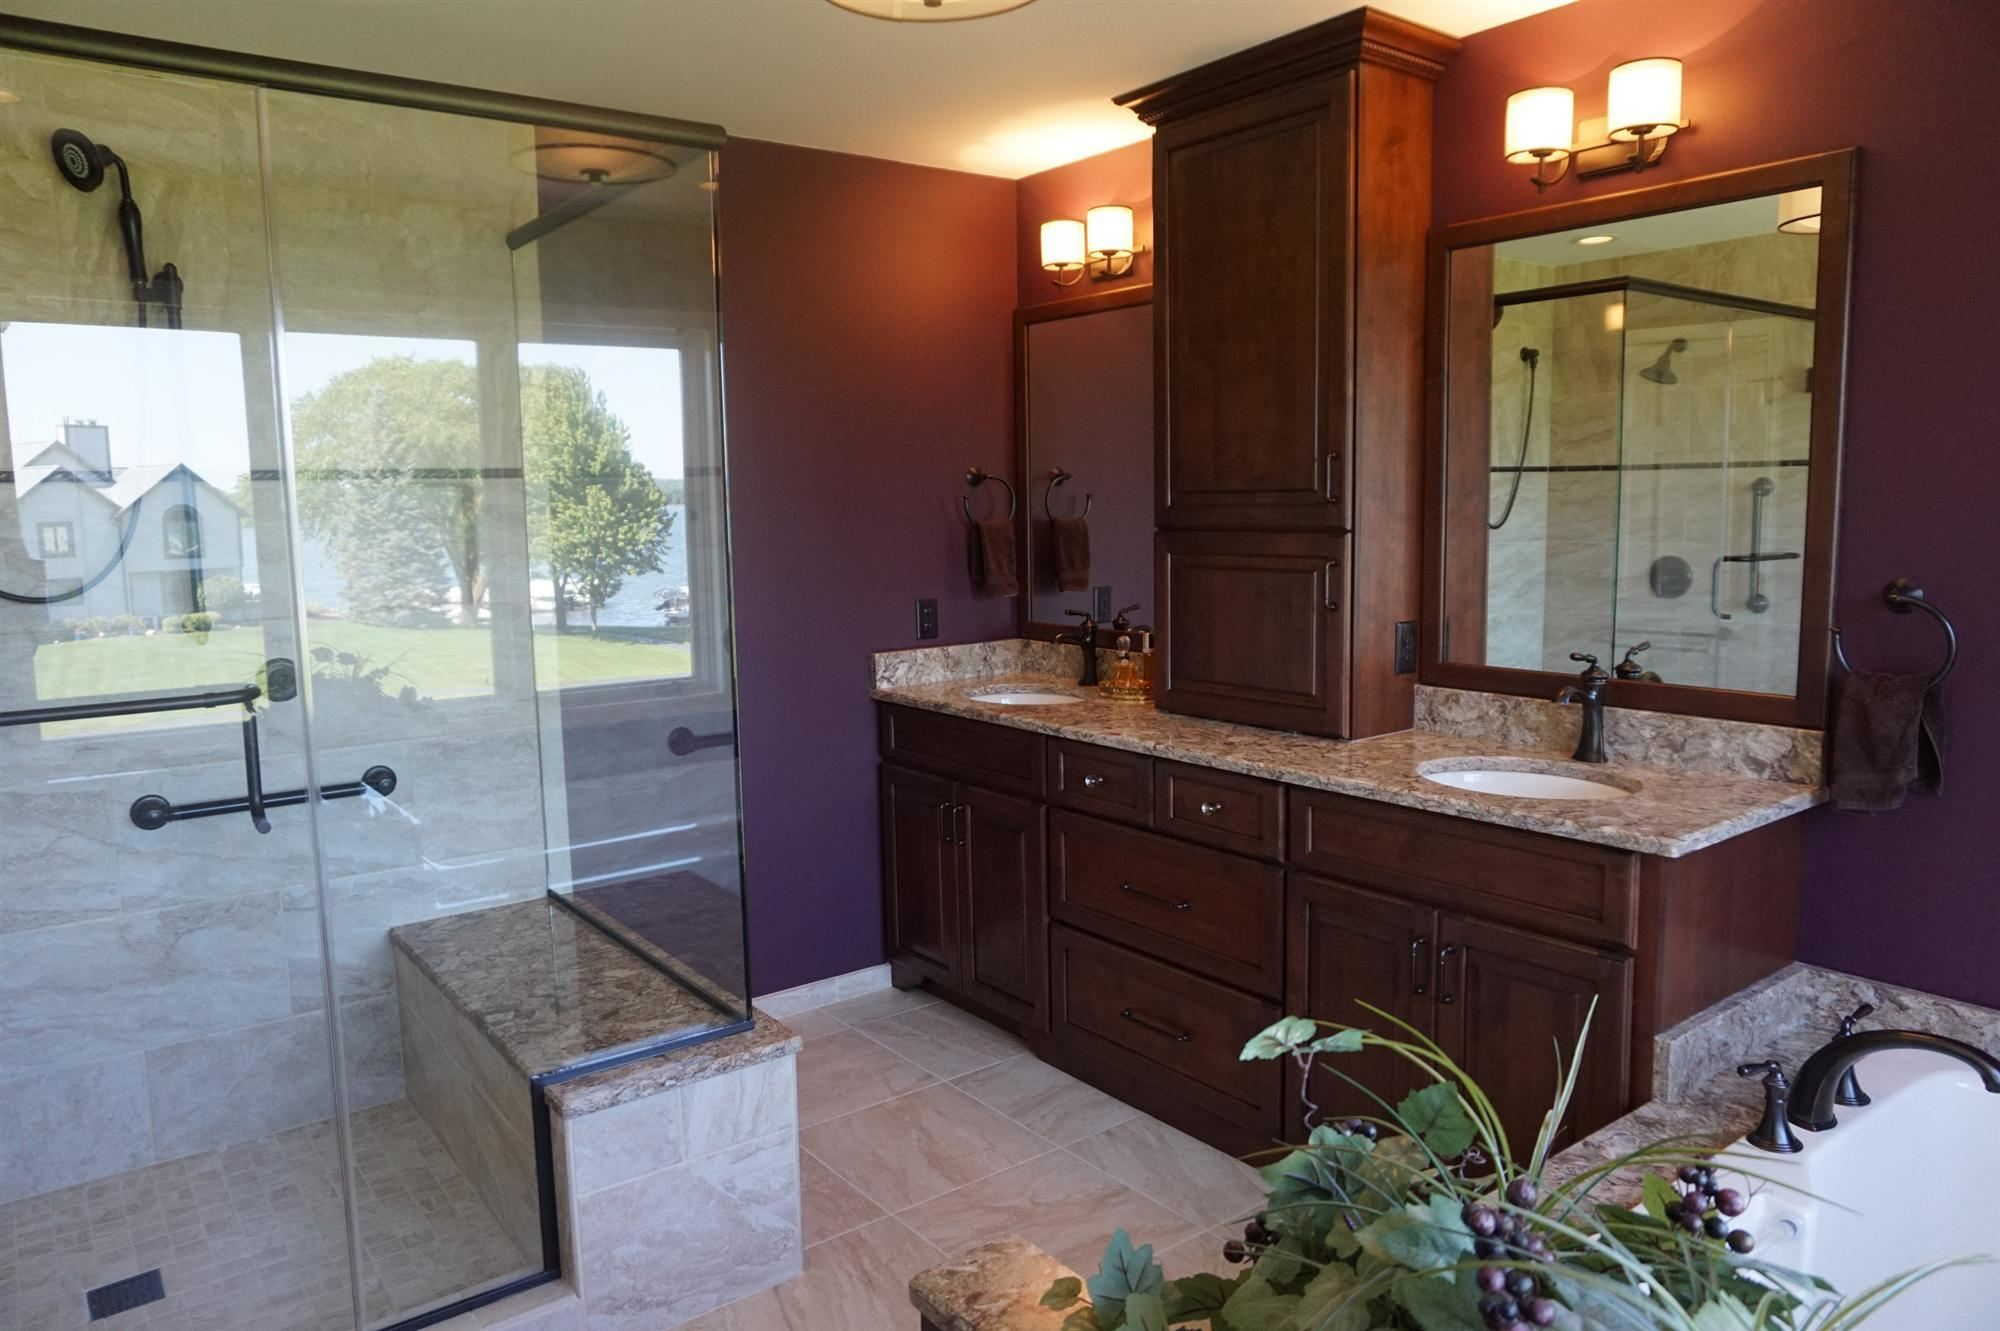 S K Pump Plumbing Inc Brookfield Wisconsin - Bathroom remodeling brookfield wi